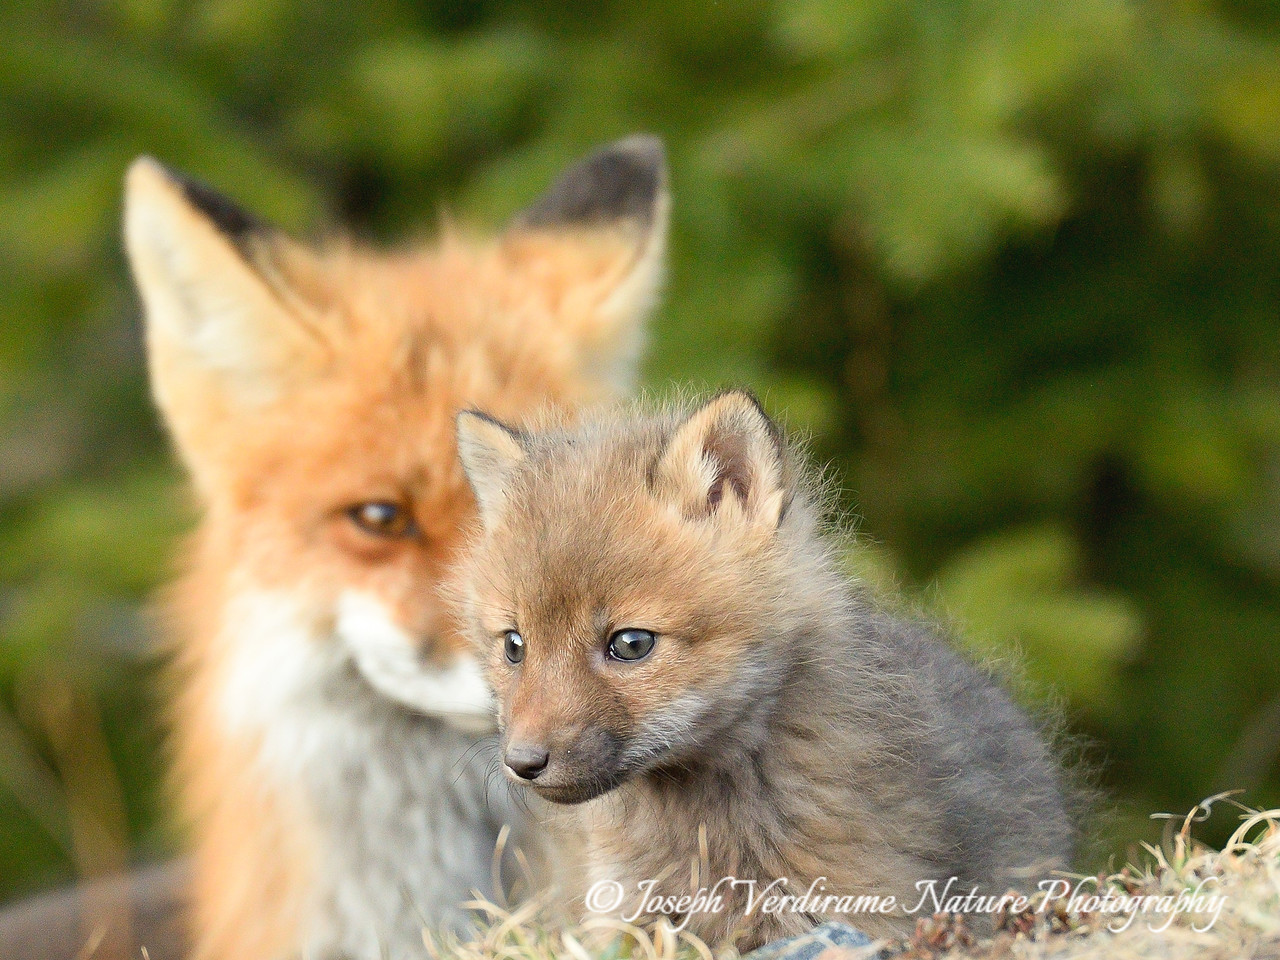 Fox kit with intense gaze